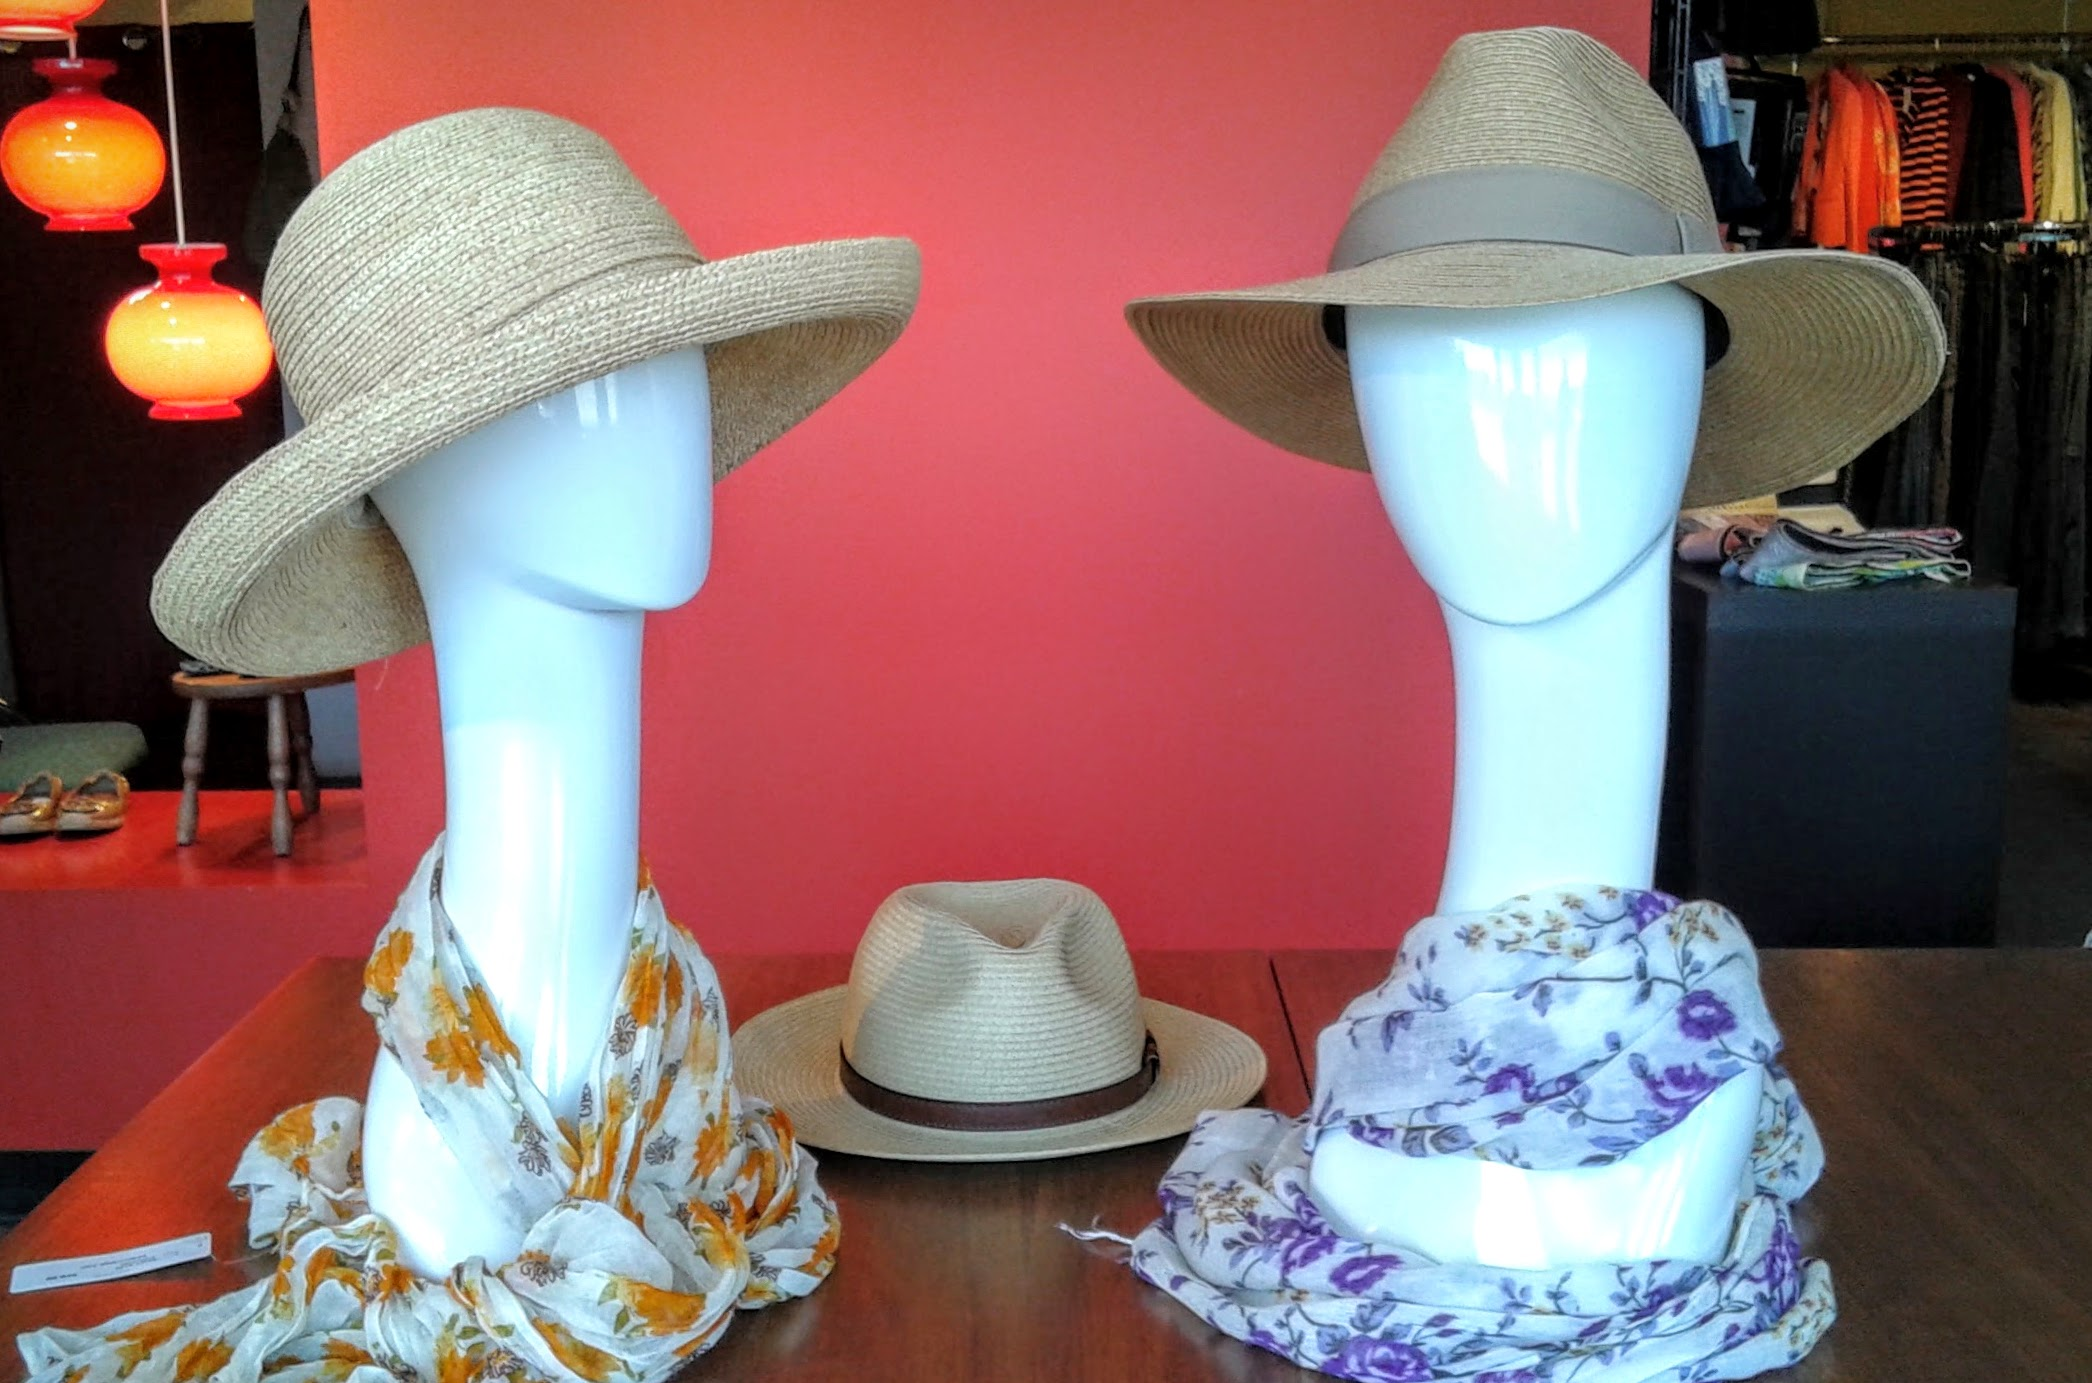 (From left to right, friends): Hat $20, scarf $10;  deLux  straw hat $45;  deLux  paper hat $32, scarf $10